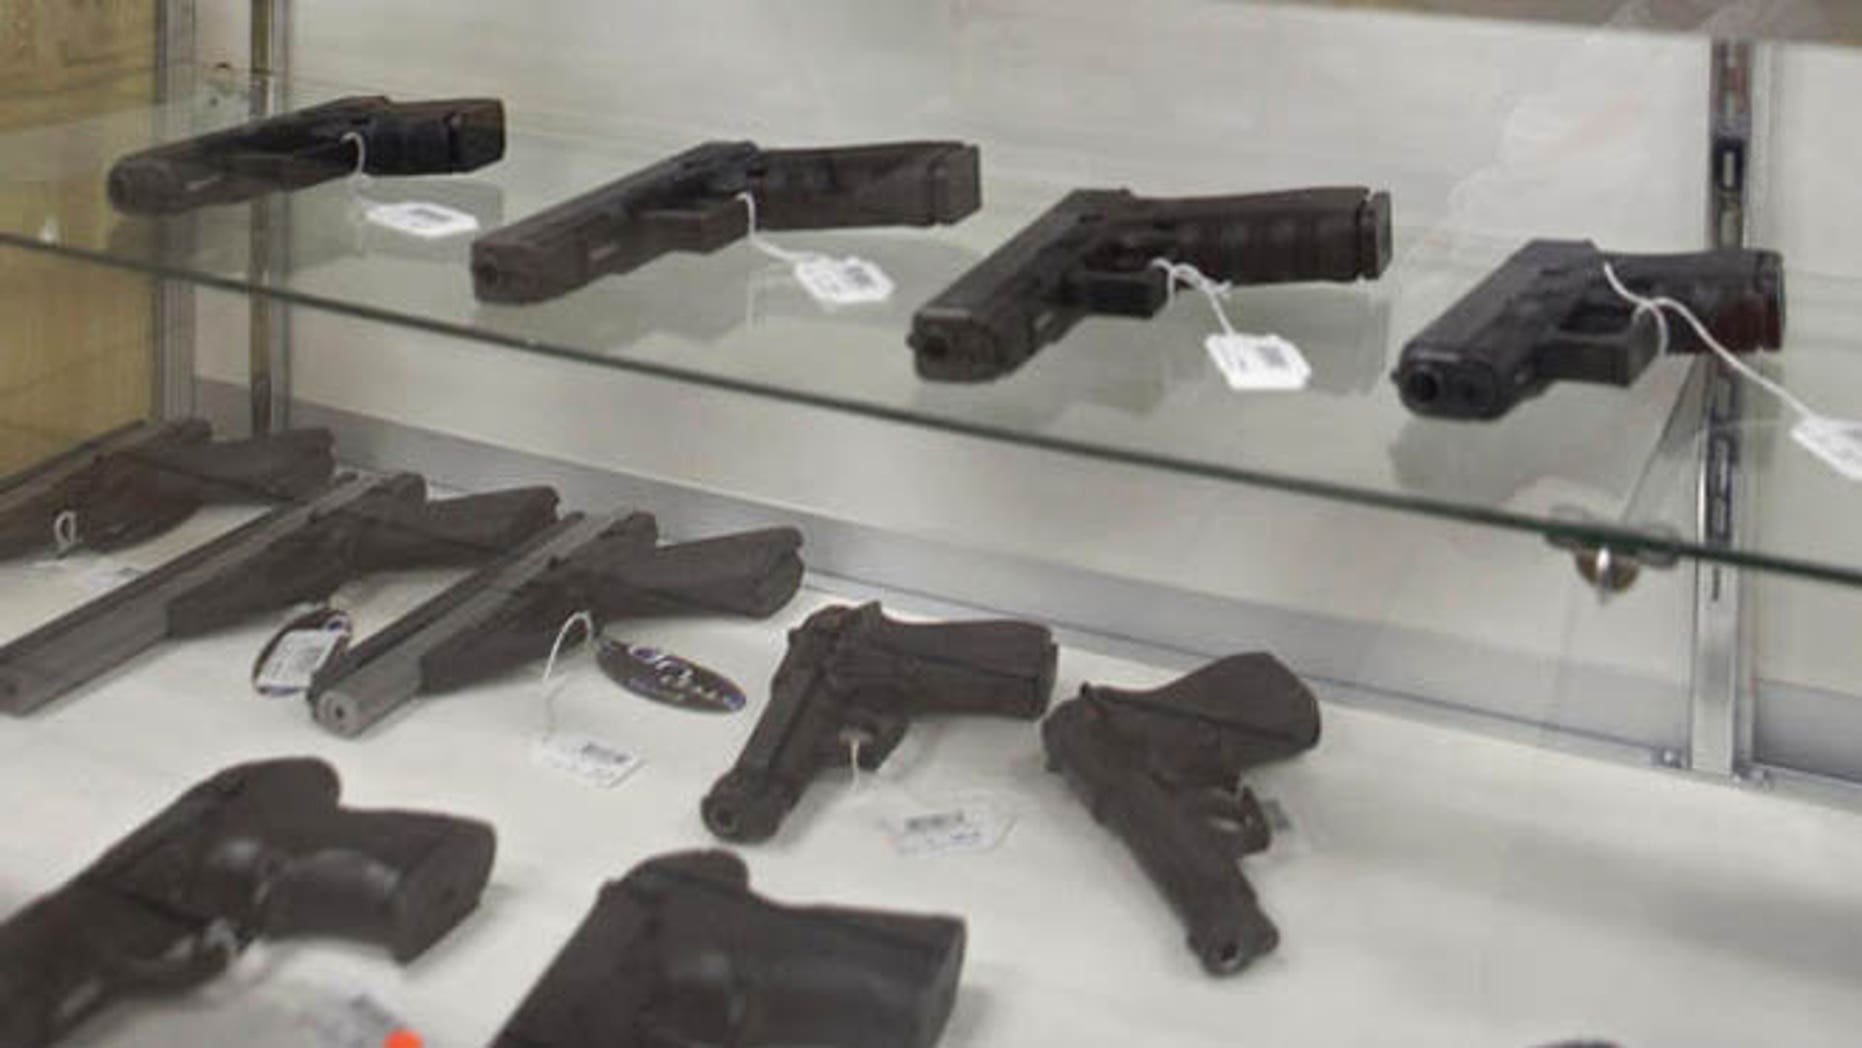 Jan. 16, 2013: Firearms are shown for sale at a store in Middlefield, Ohio.